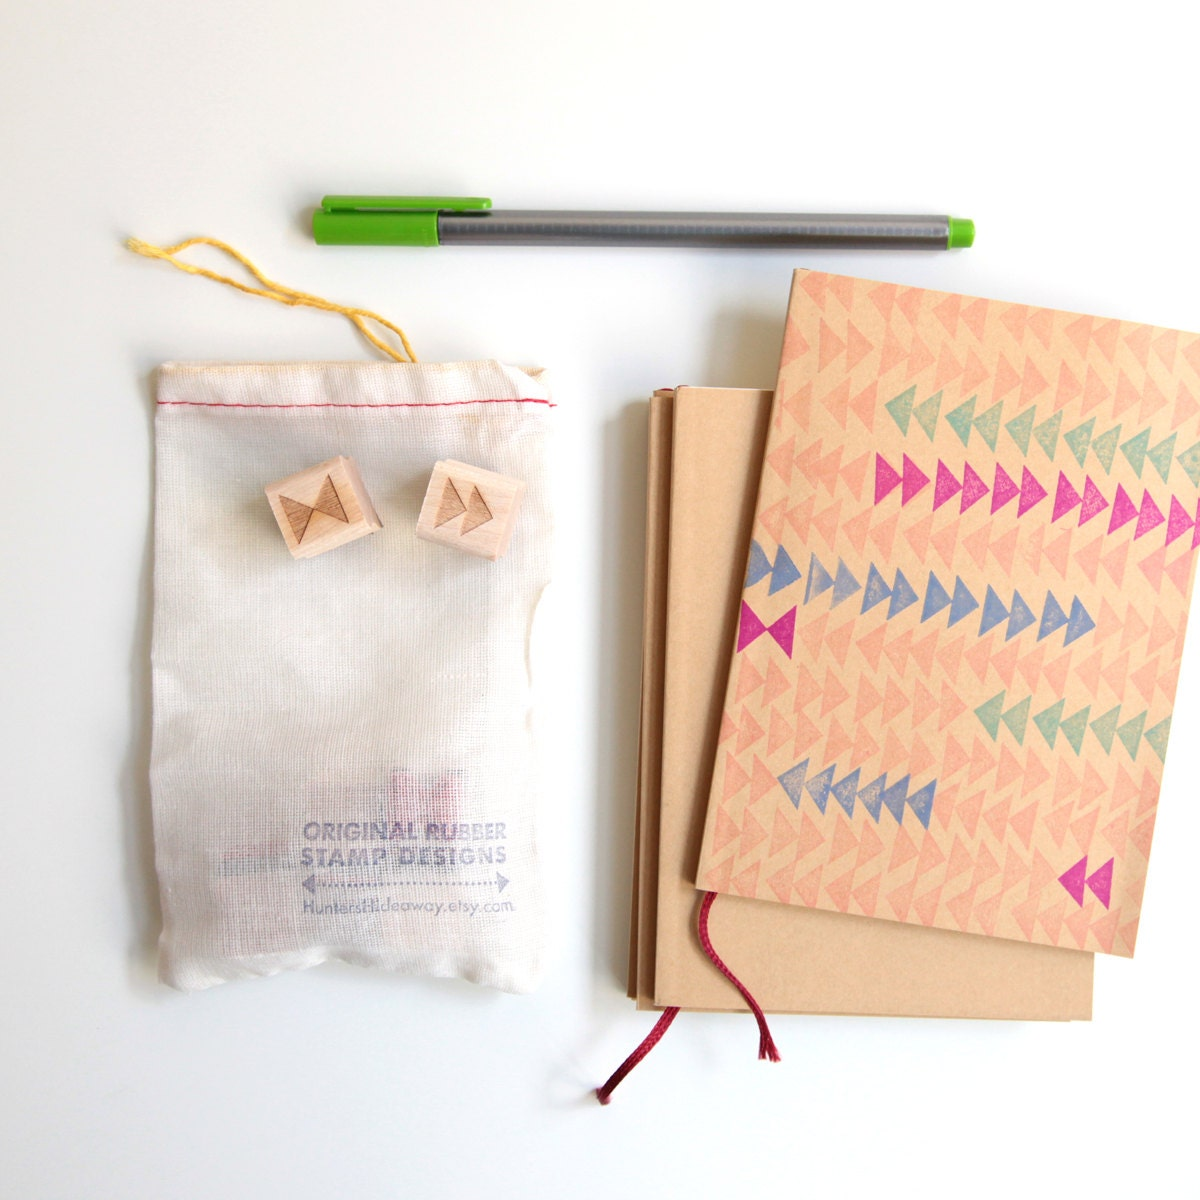 DIY Notebook Kit with geometric rubber stamps and blank sketchbook